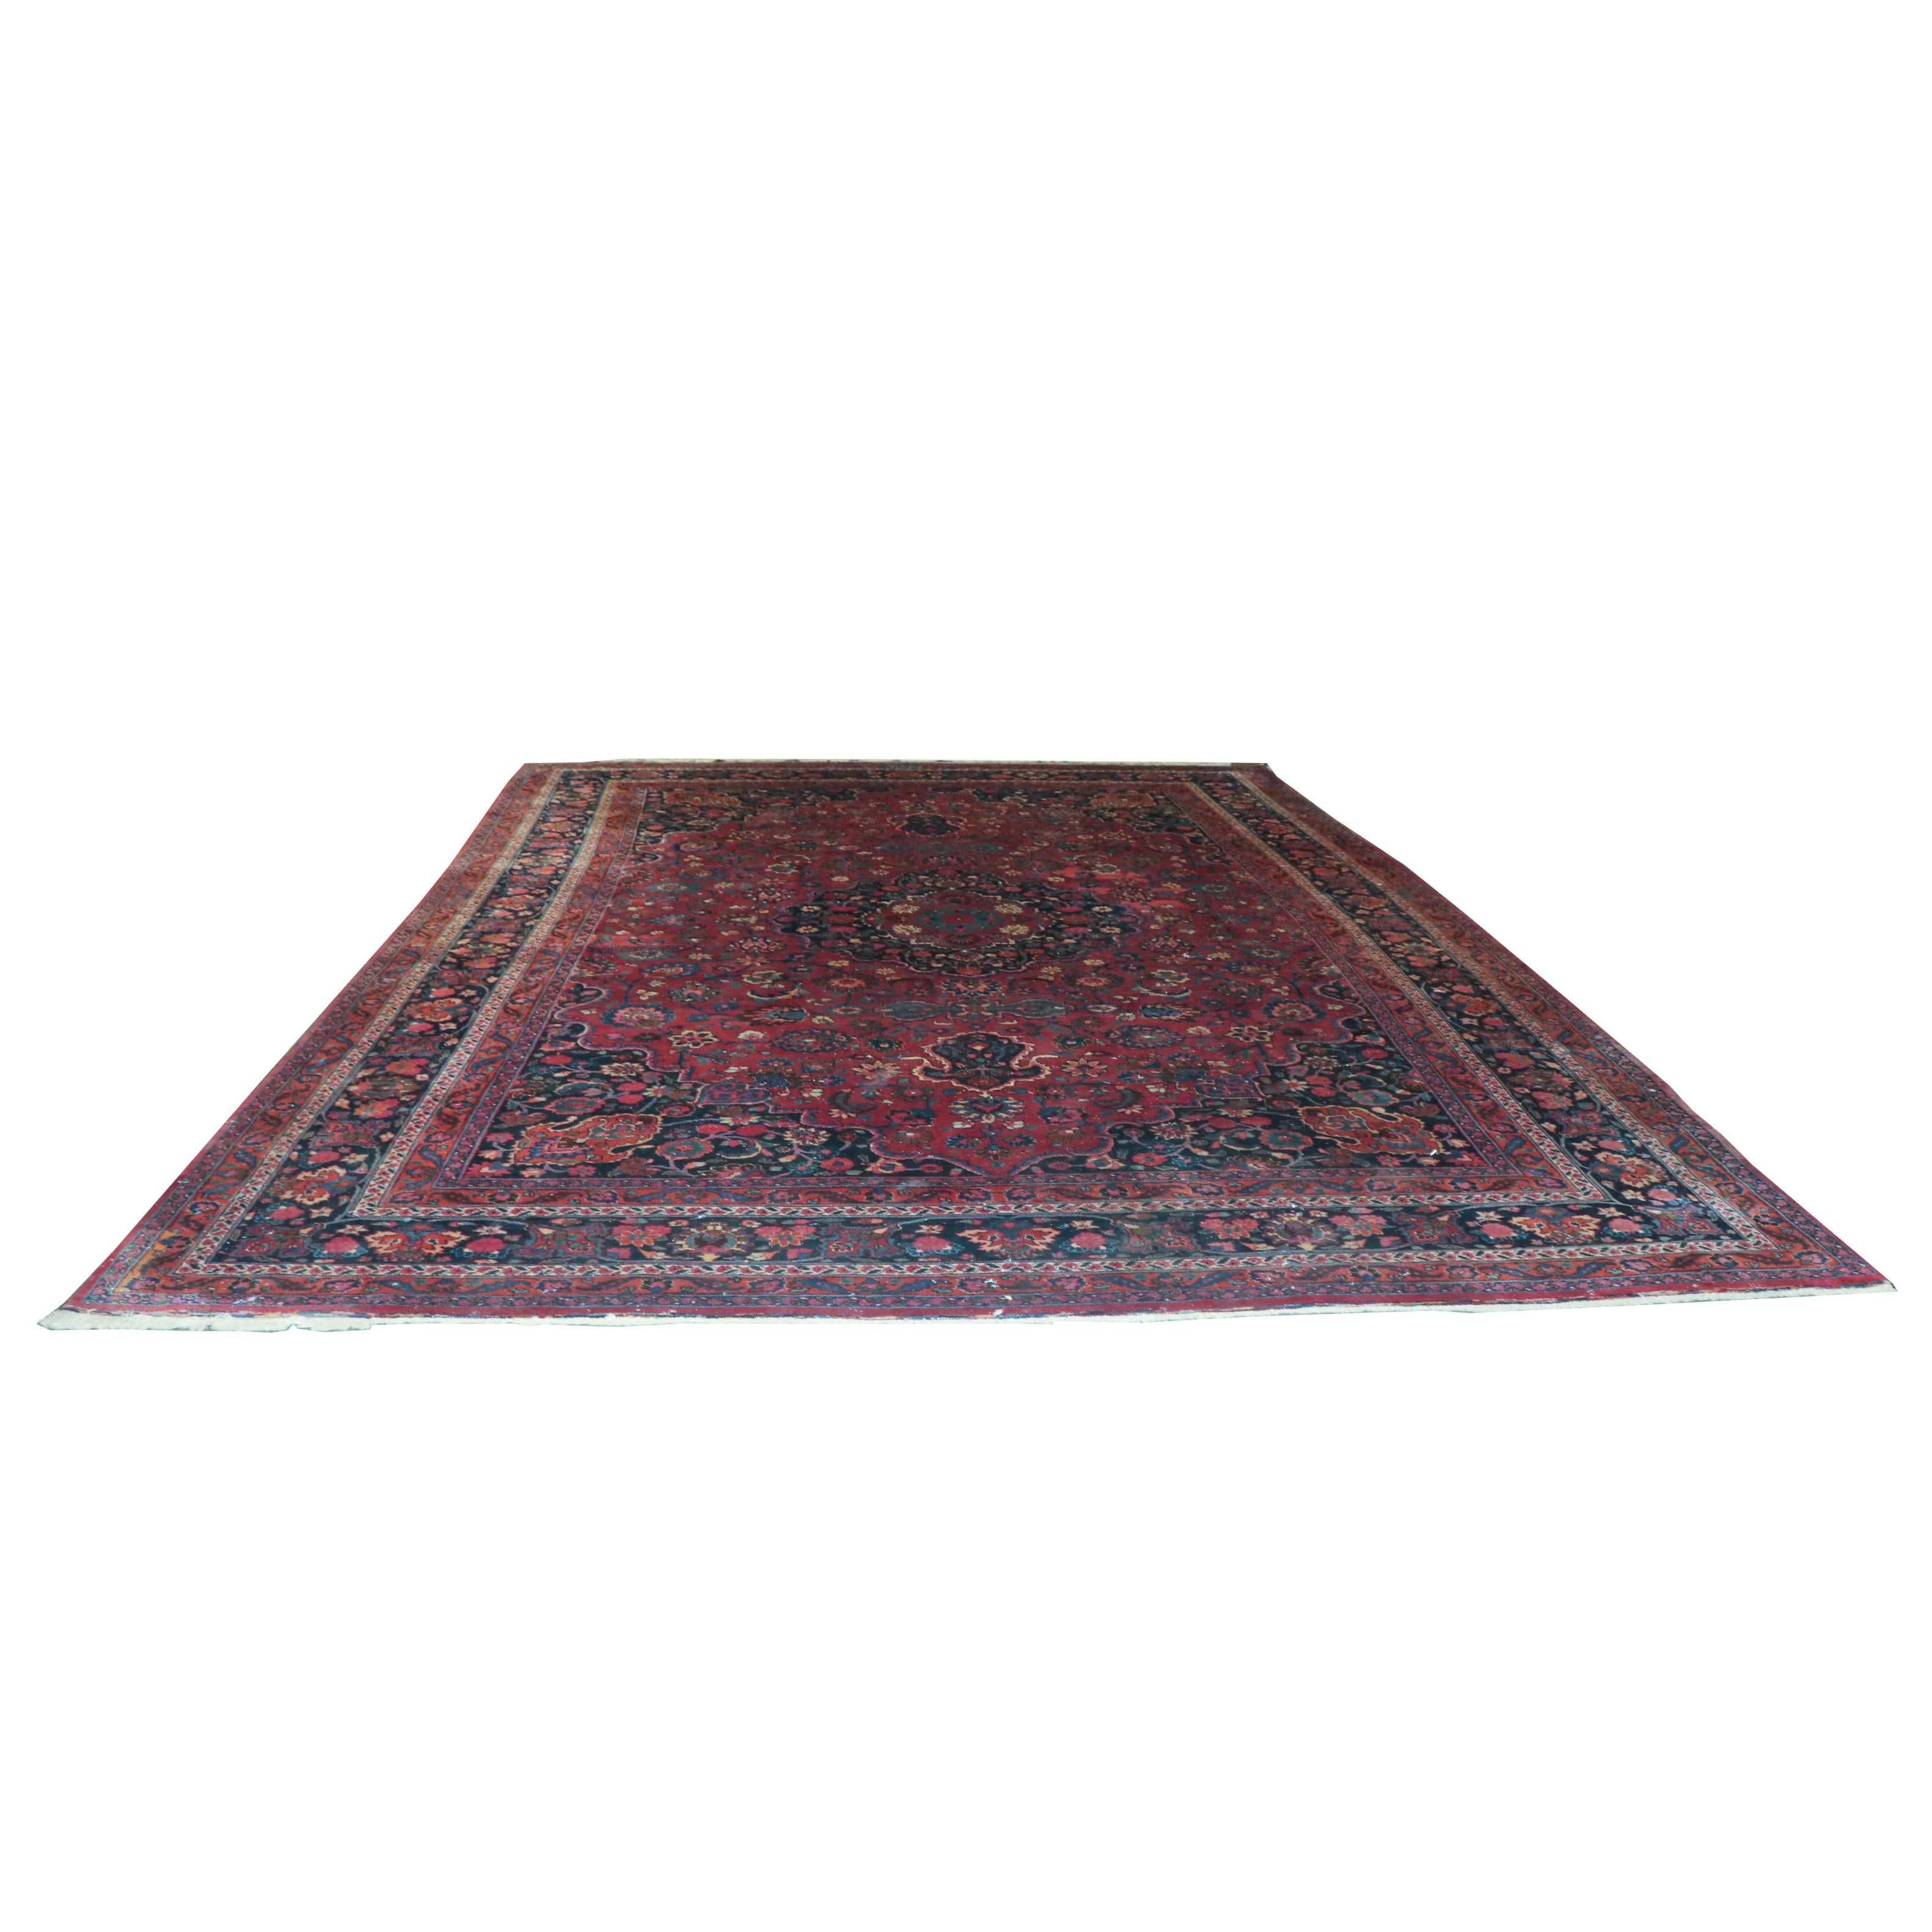 Semi-Antique Hand-Knotted Persian Meshed Wool Room Sized Rug